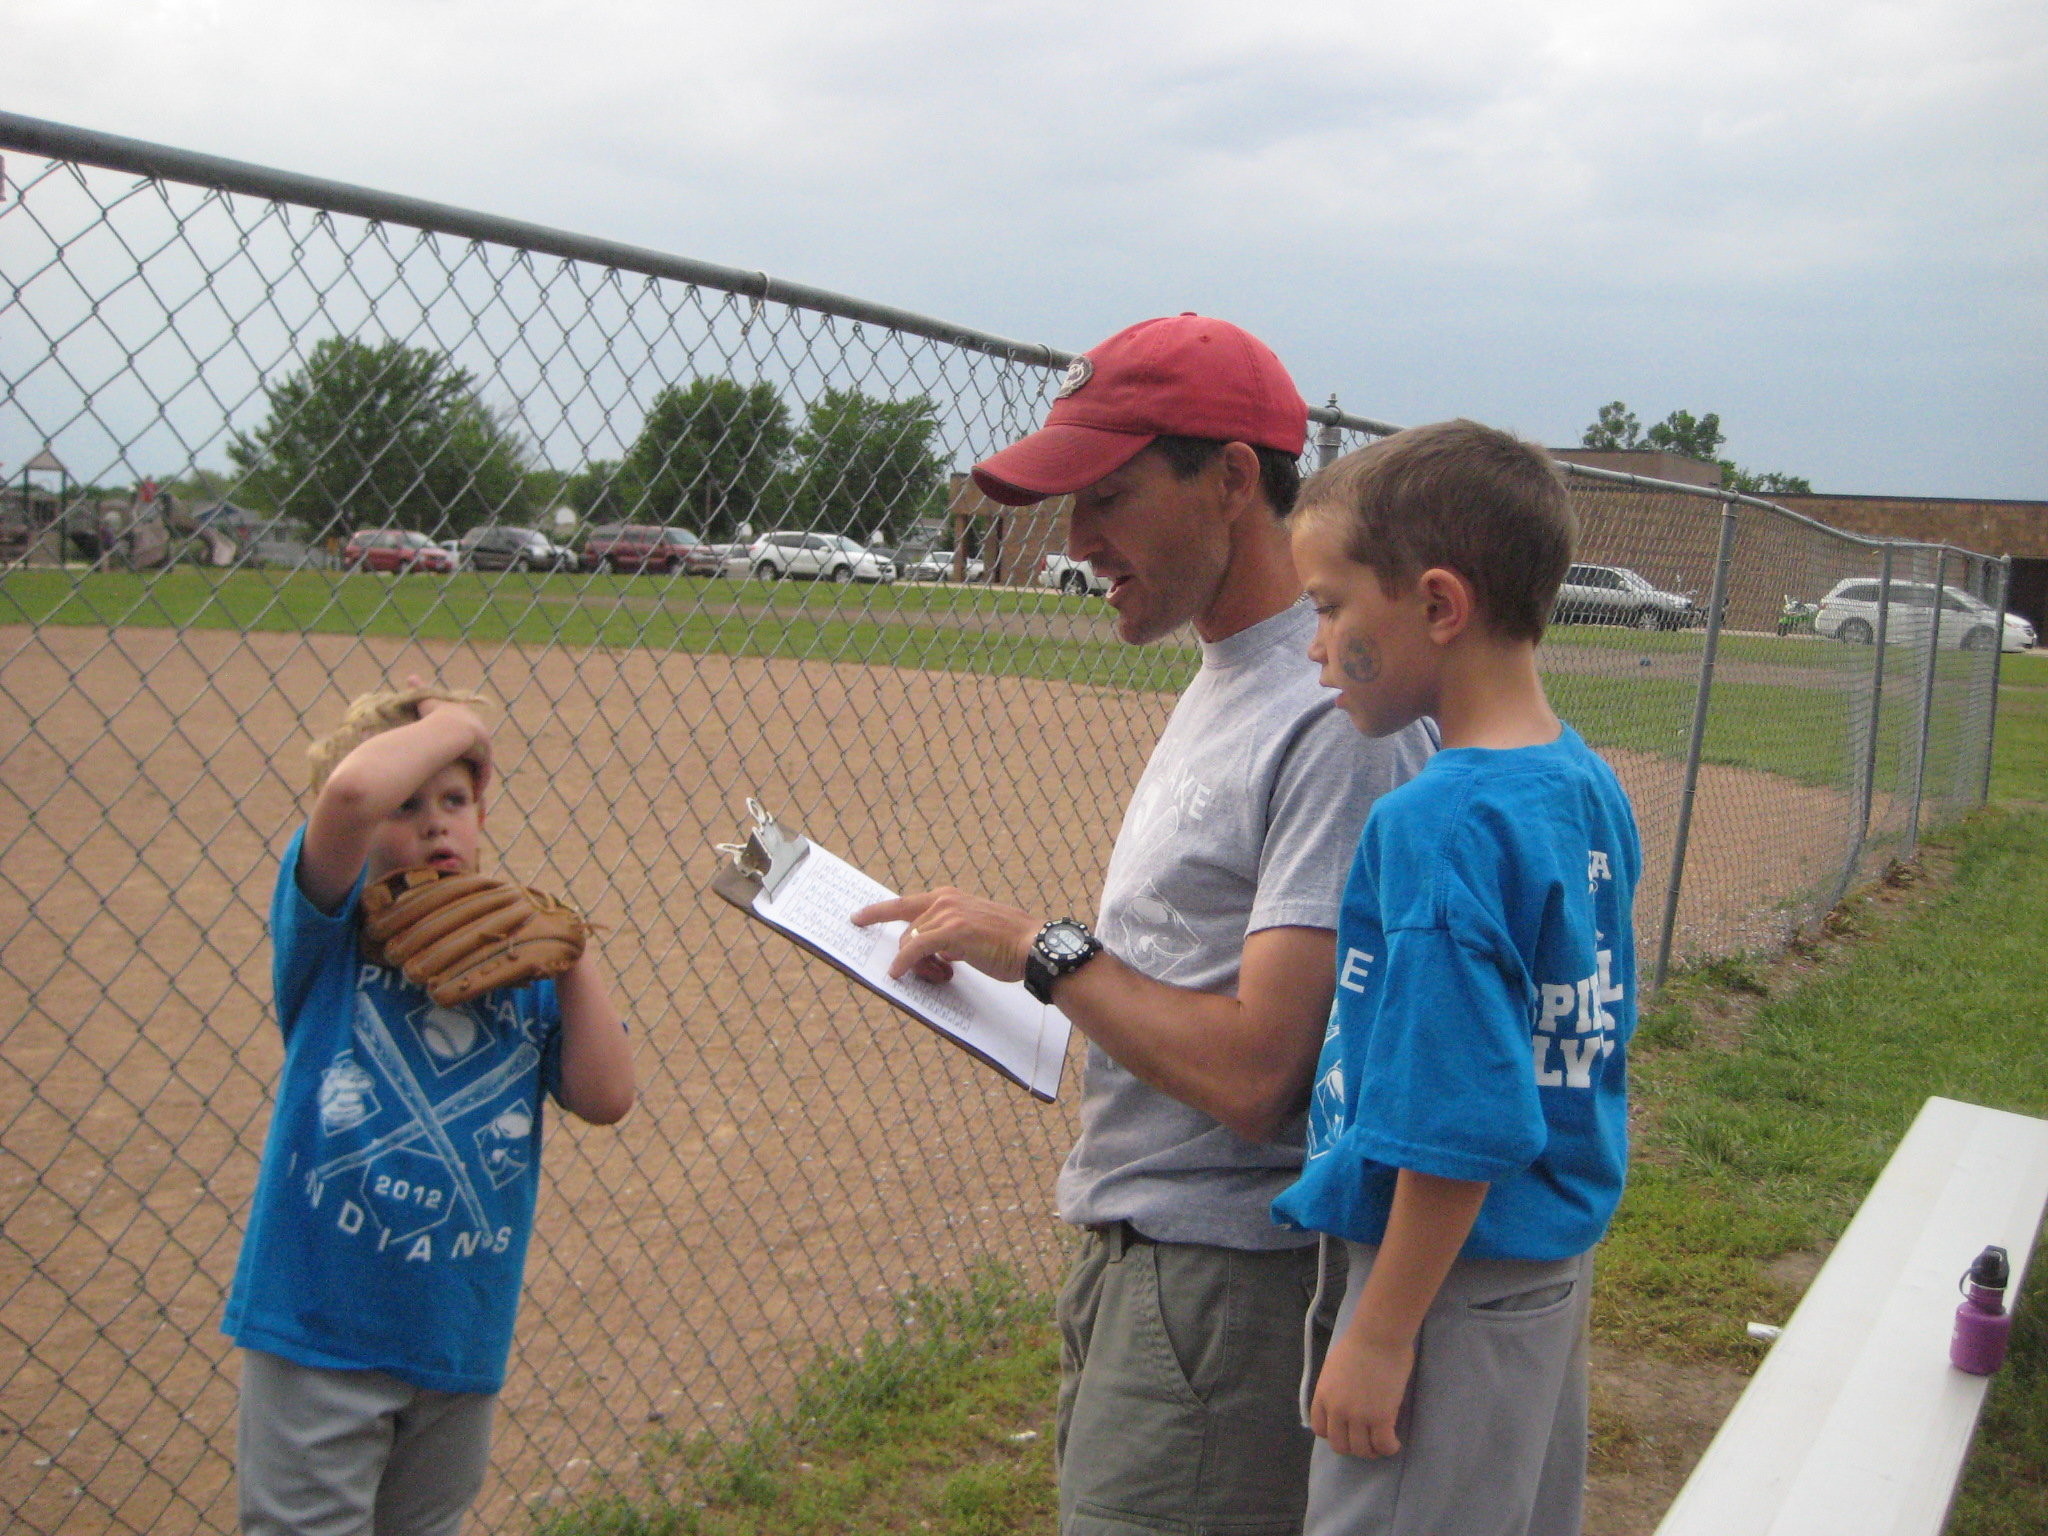 T-ball strategy!